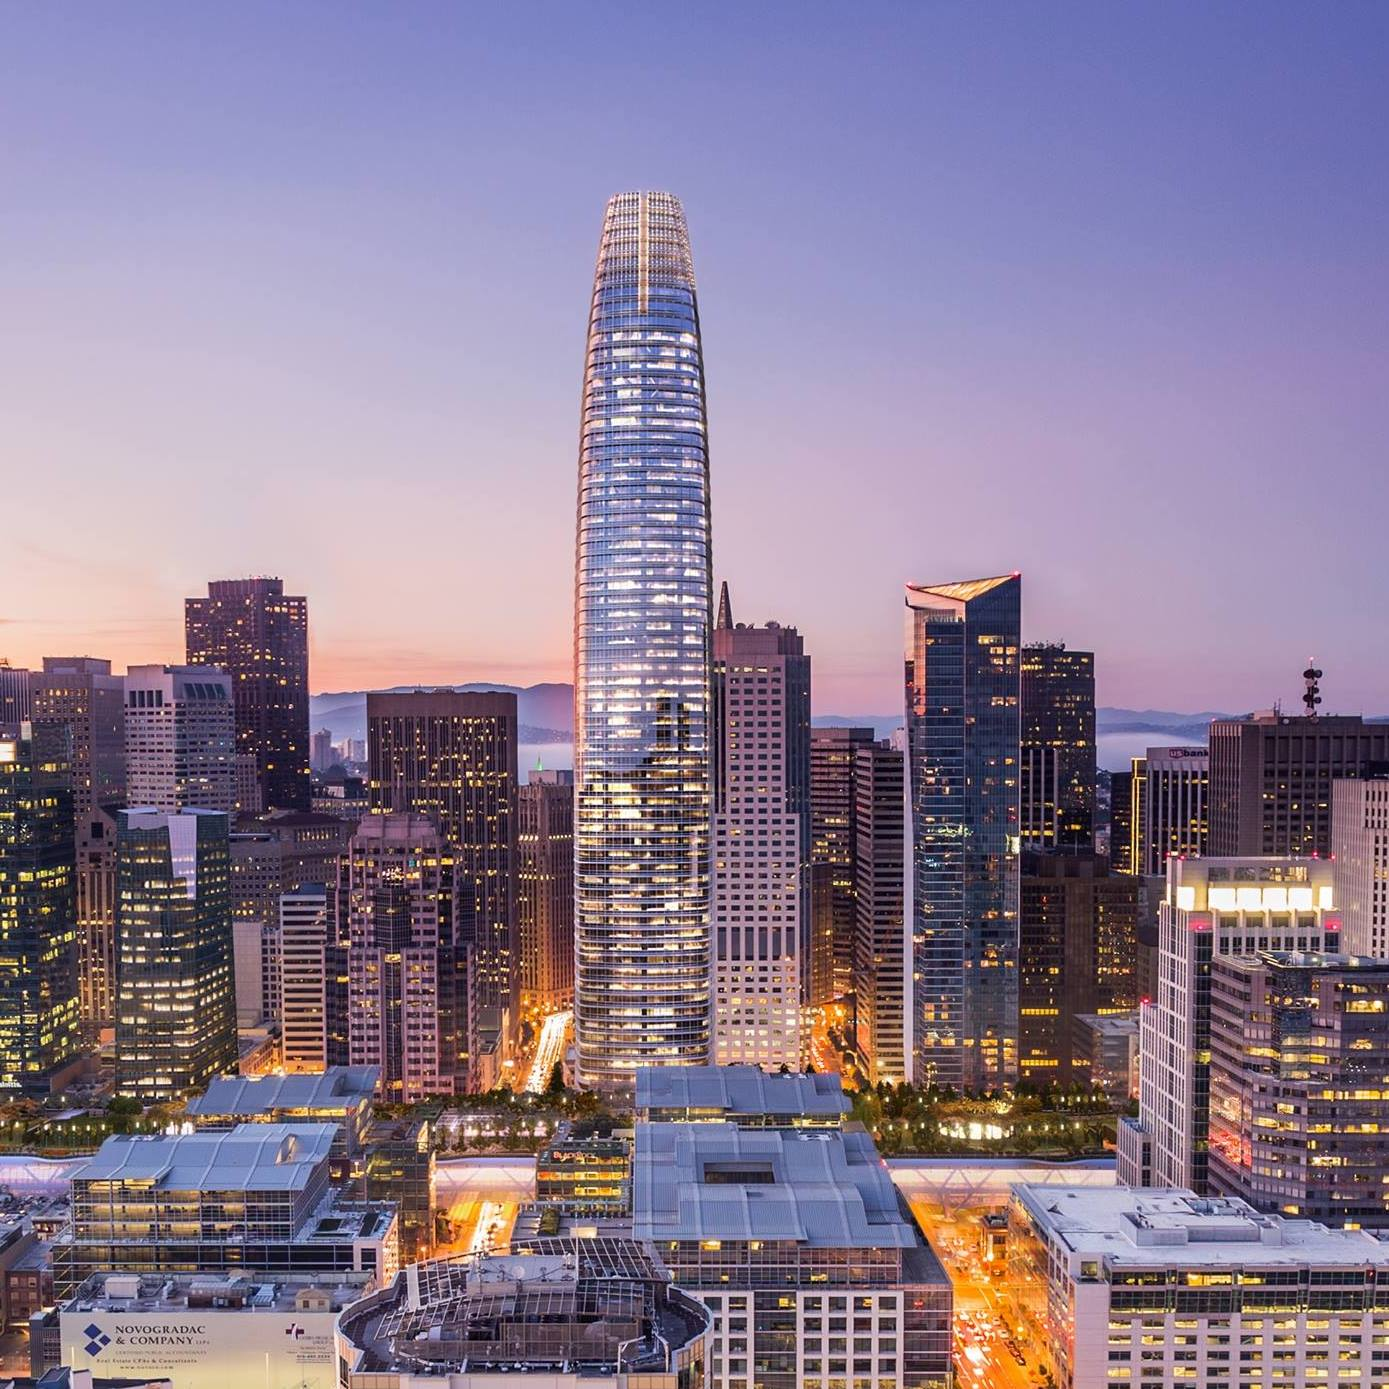 The Salesforce Tower